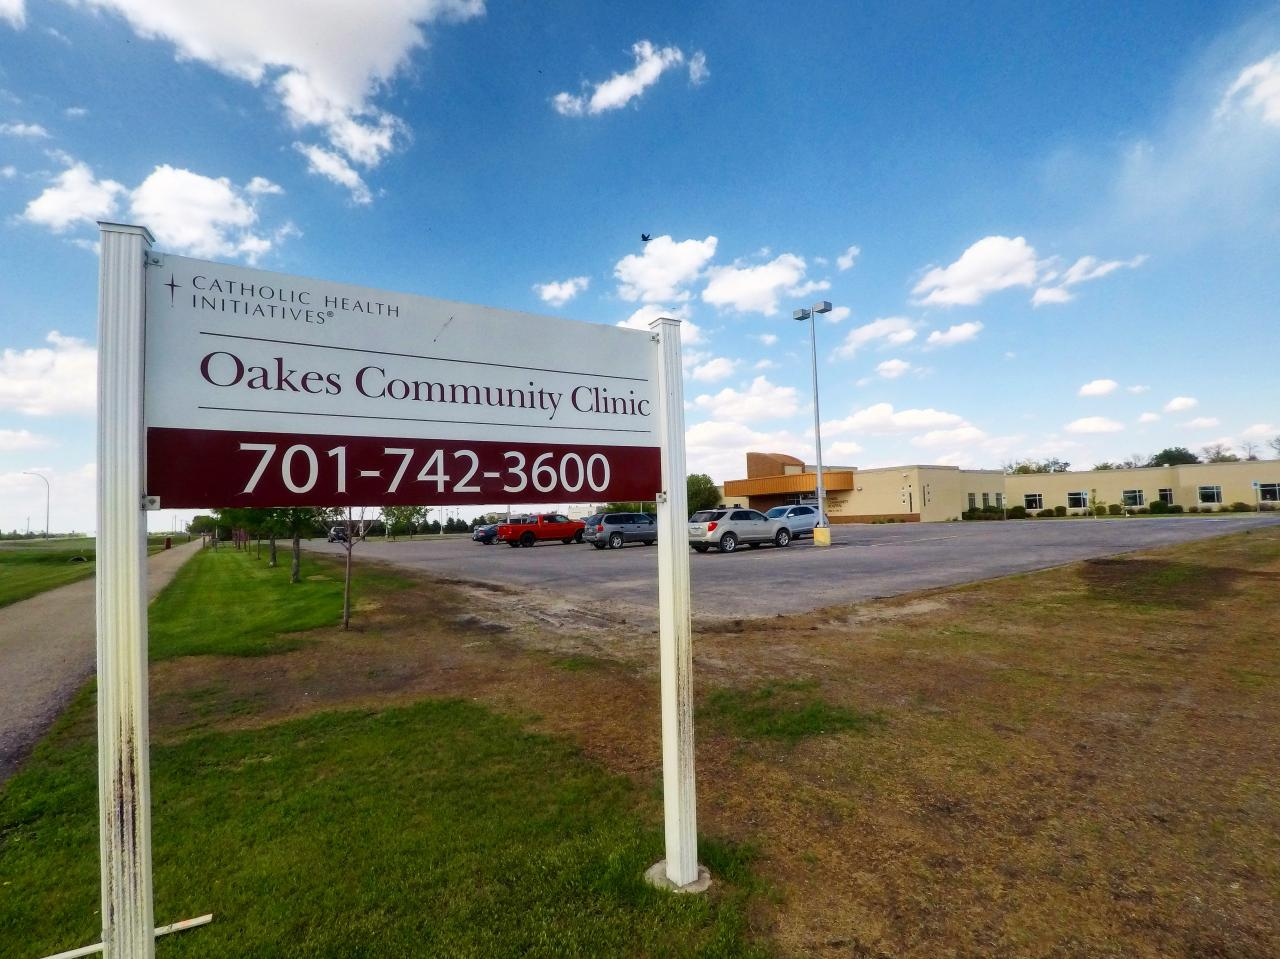 Oakes Community Clinic